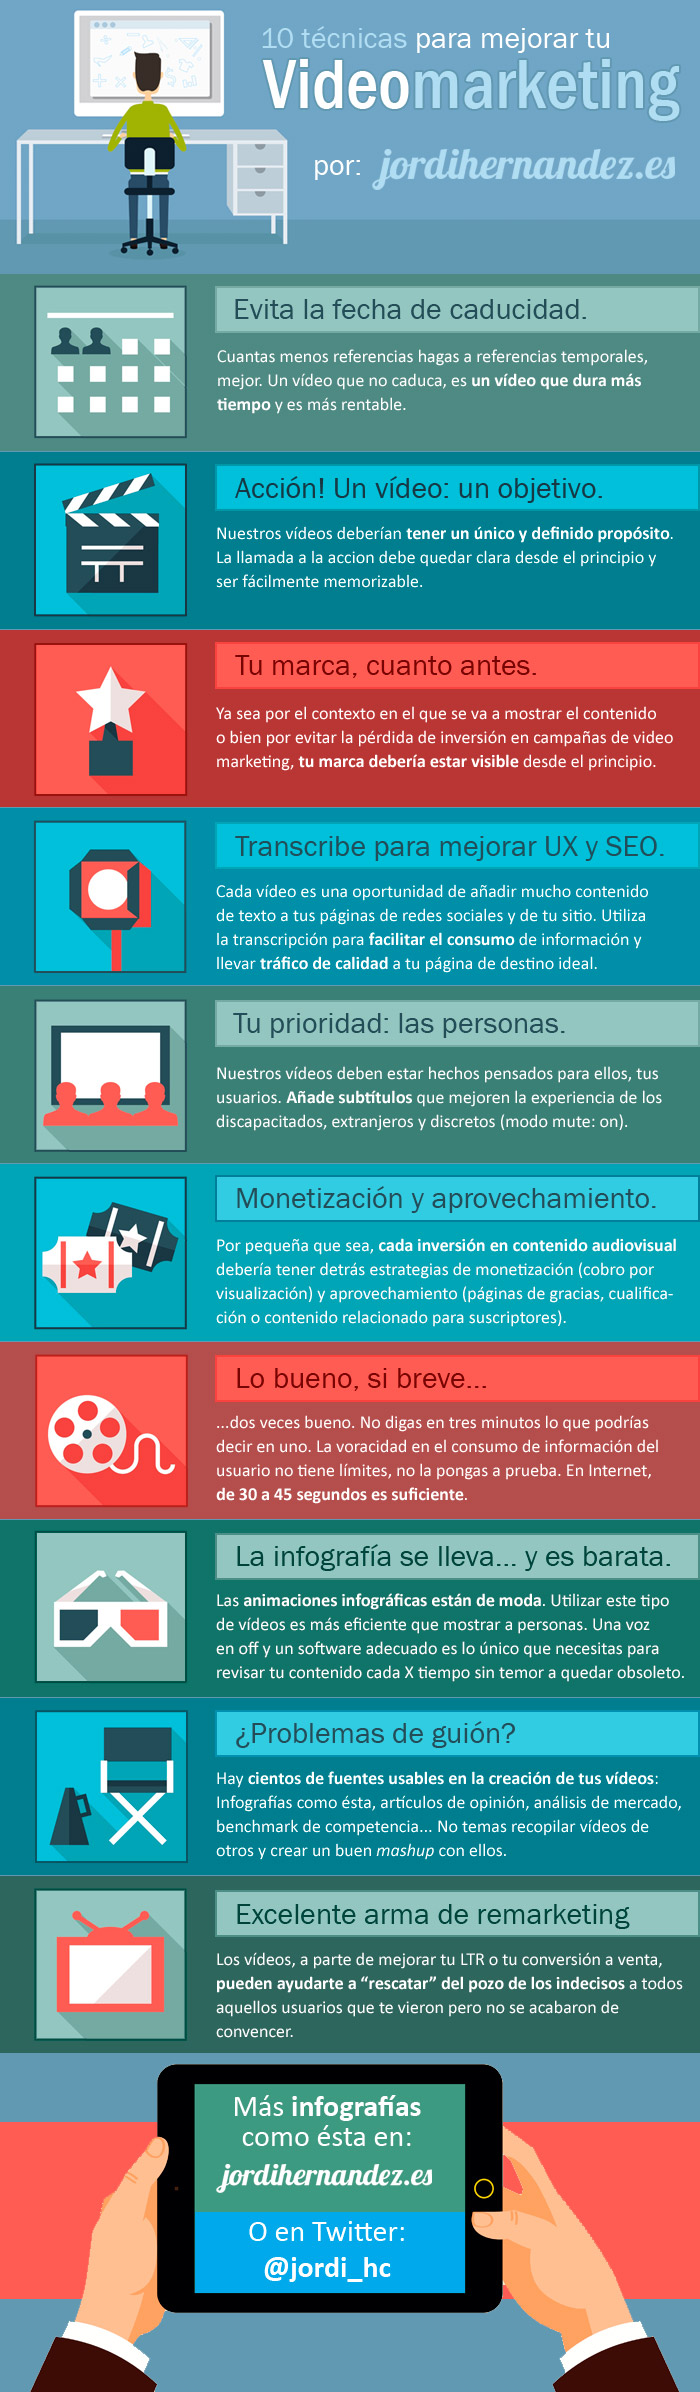 Infografía de Jordi Hernández: http://www.jordihernandez.es/video-marketing/